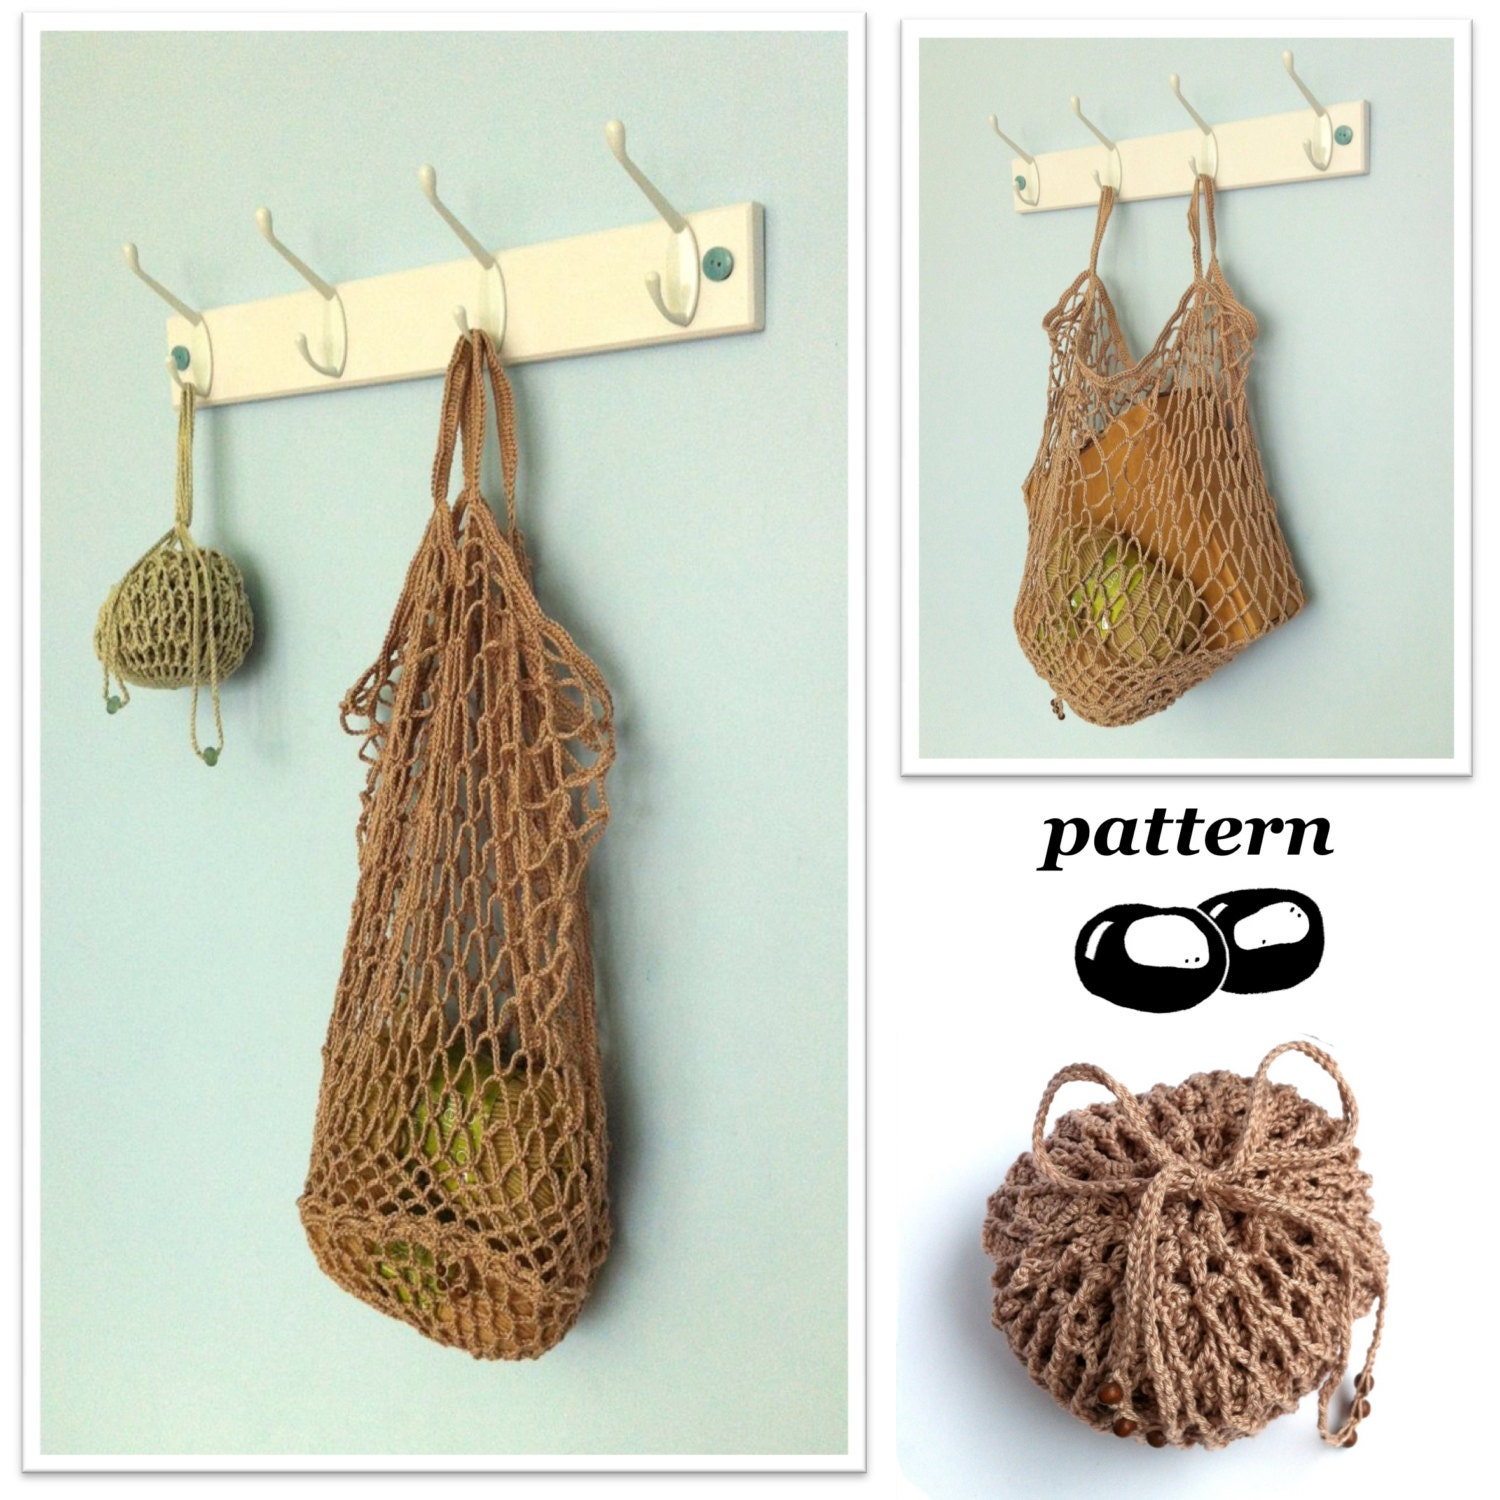 Crochet Bag Pattern / Foldable Packaway Mesh Bag String Bag